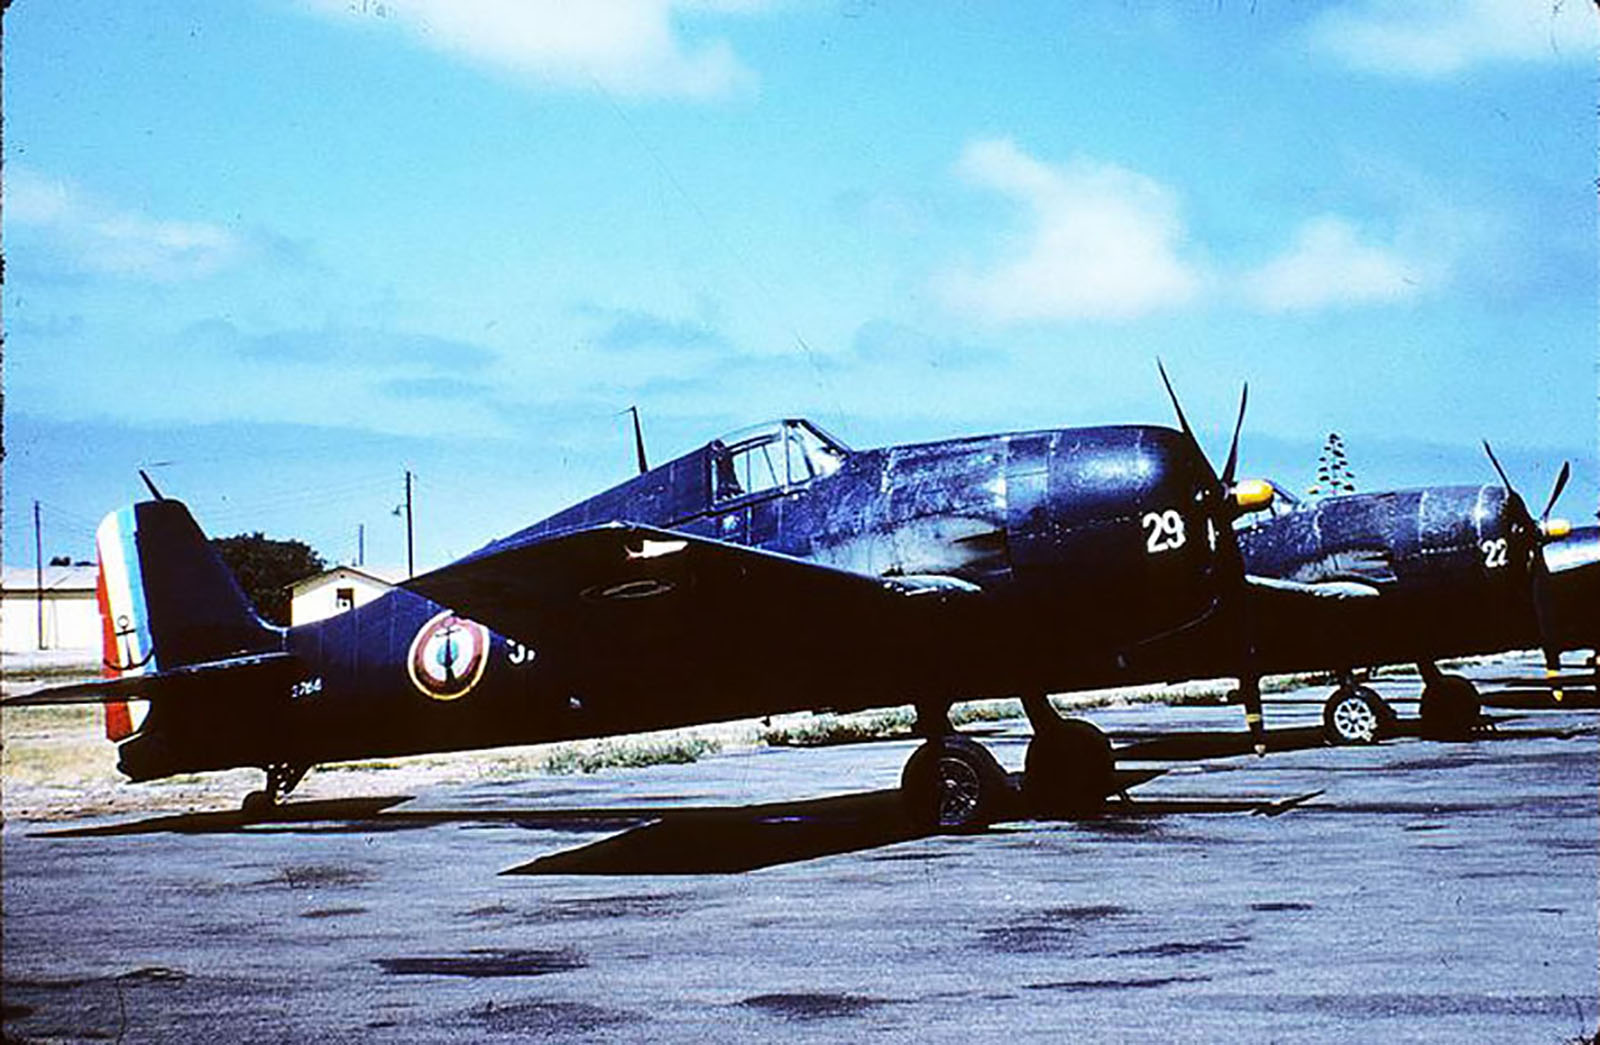 French Navy Grumman F6F 5 Hellcat White 29 and 22 showing standard French Navy Indochina paint schemes 01